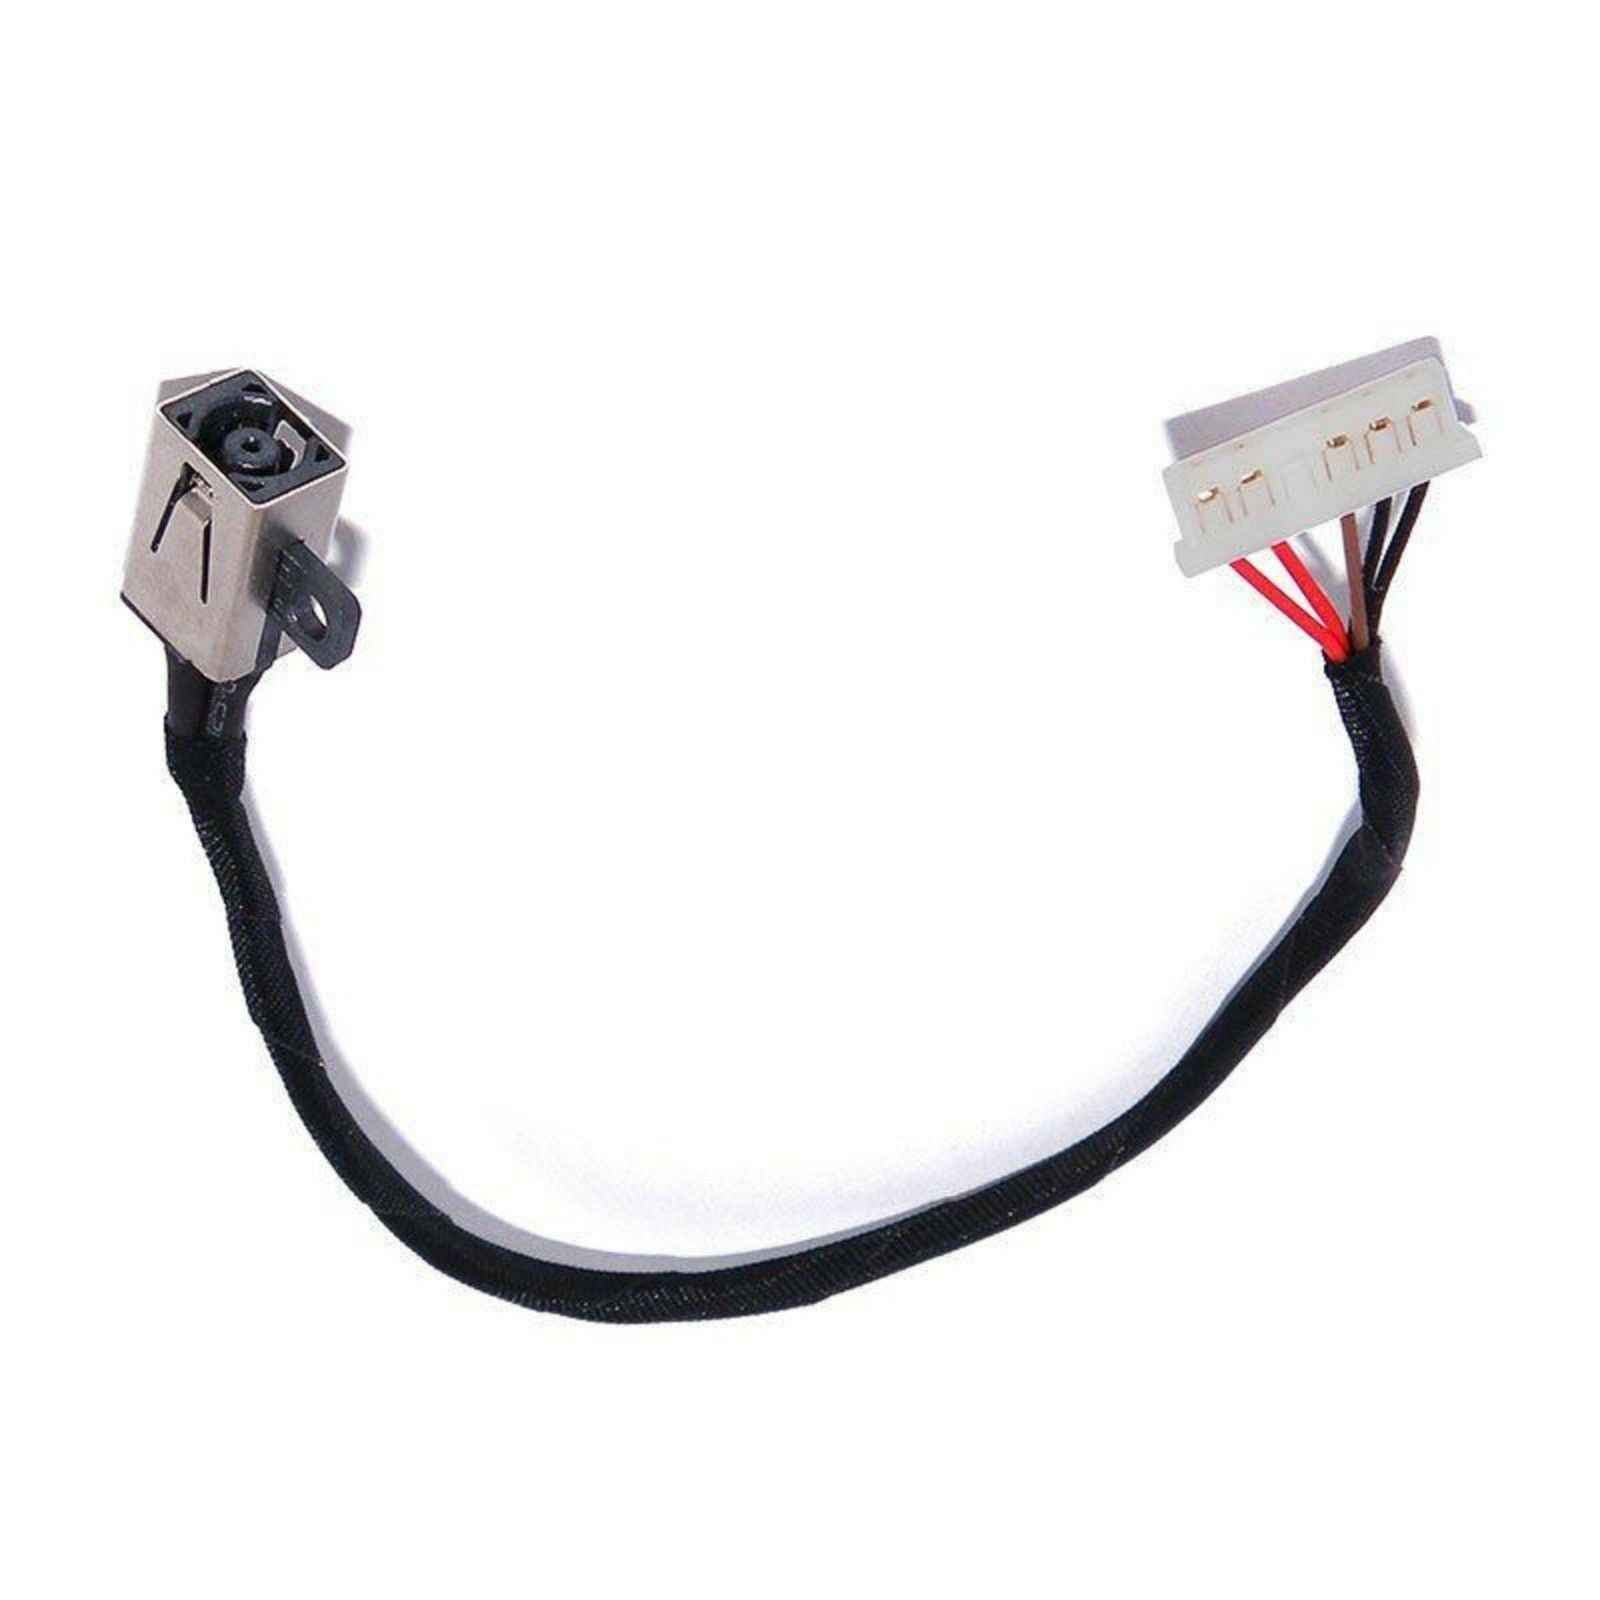 DC POWER JACK W/ Cable Harness Fits FOR Dell Vostro 14 3468 15 3568 3562 3578 P63F